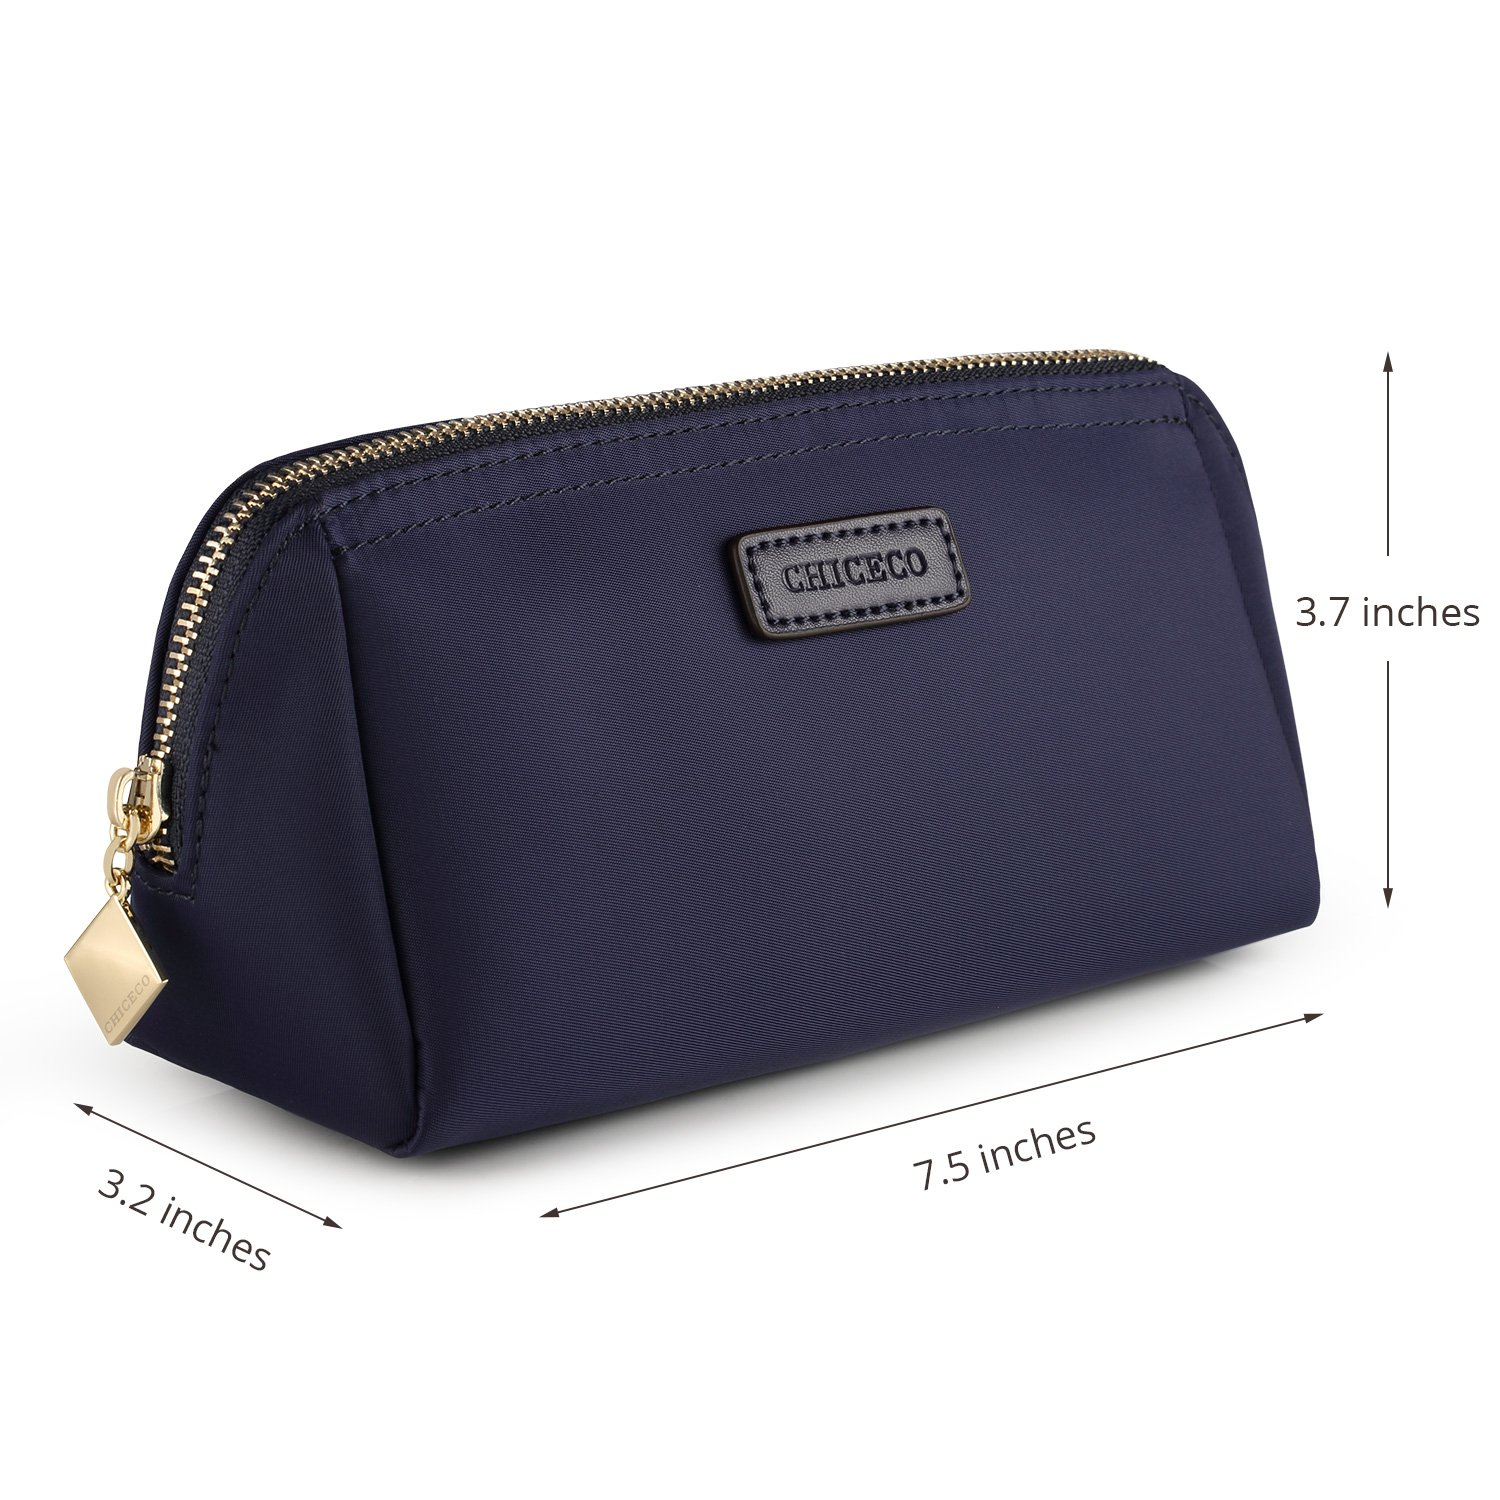 CHICECO Handy Cosmetic Pouch Clutch Makeup Bag - Navy Blue by CHICECO (Image #5)